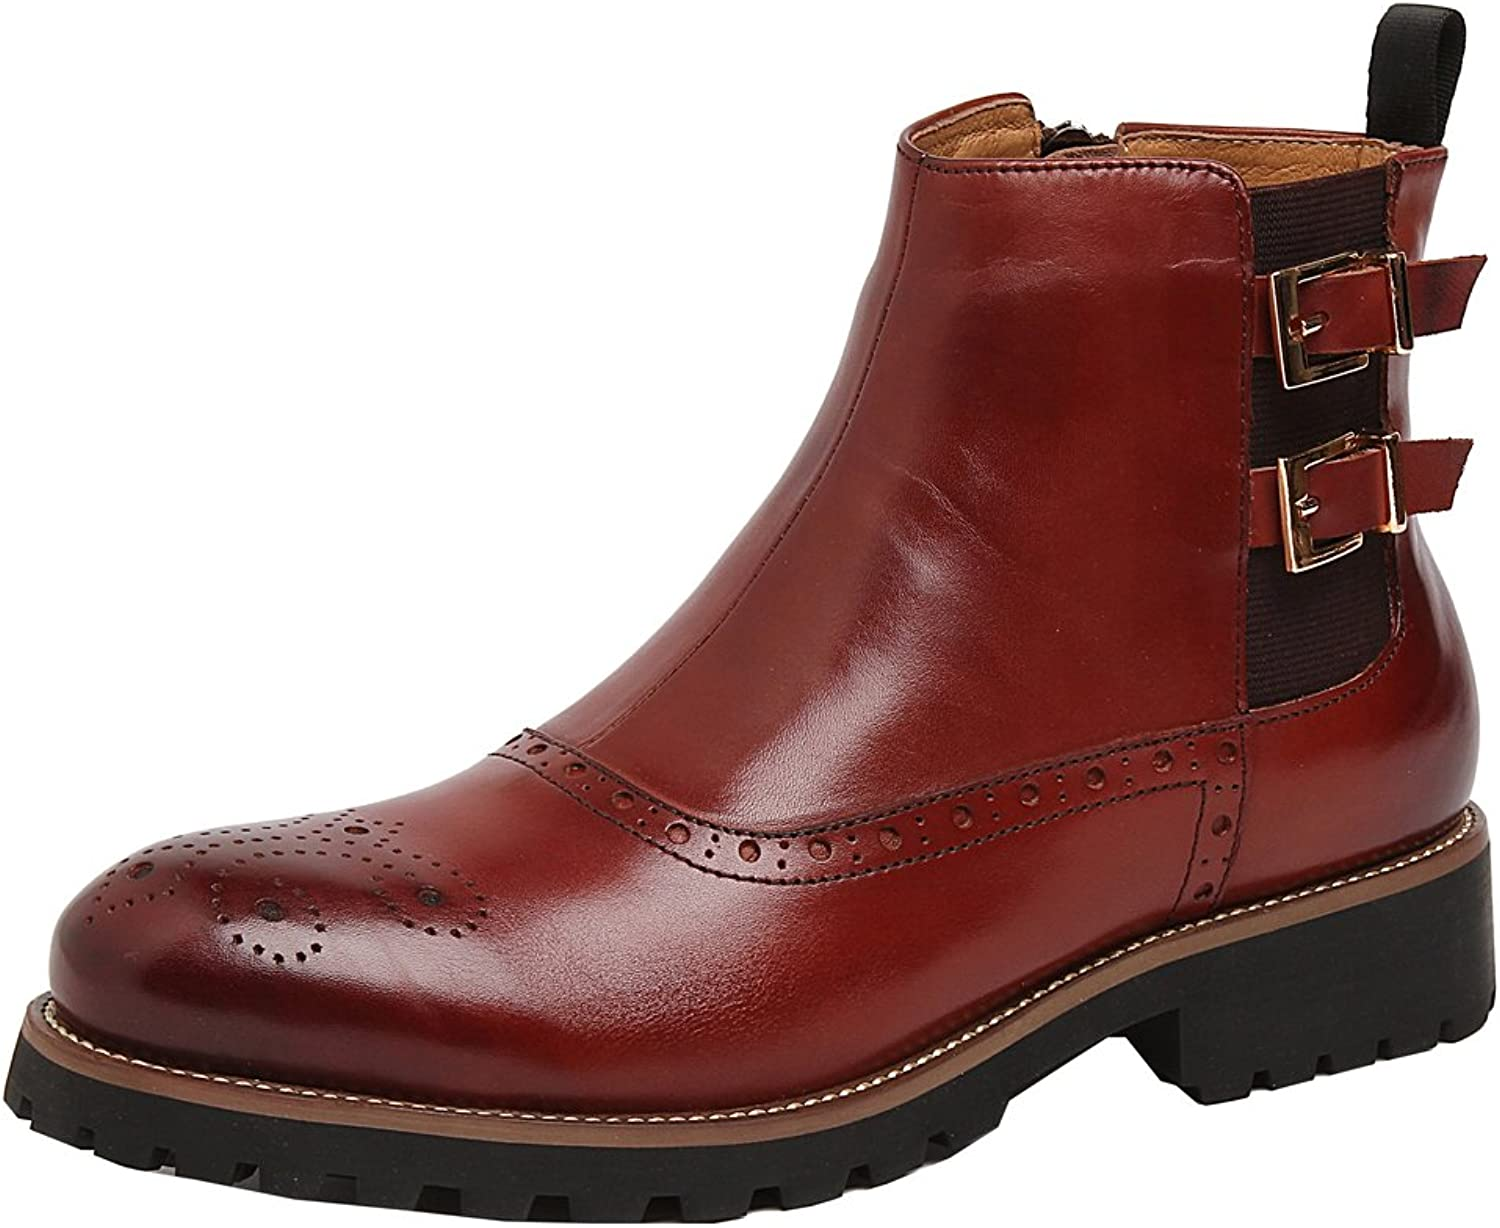 MedzRE Men's Leather Wingtip Formal Leisure Ankle High shoes